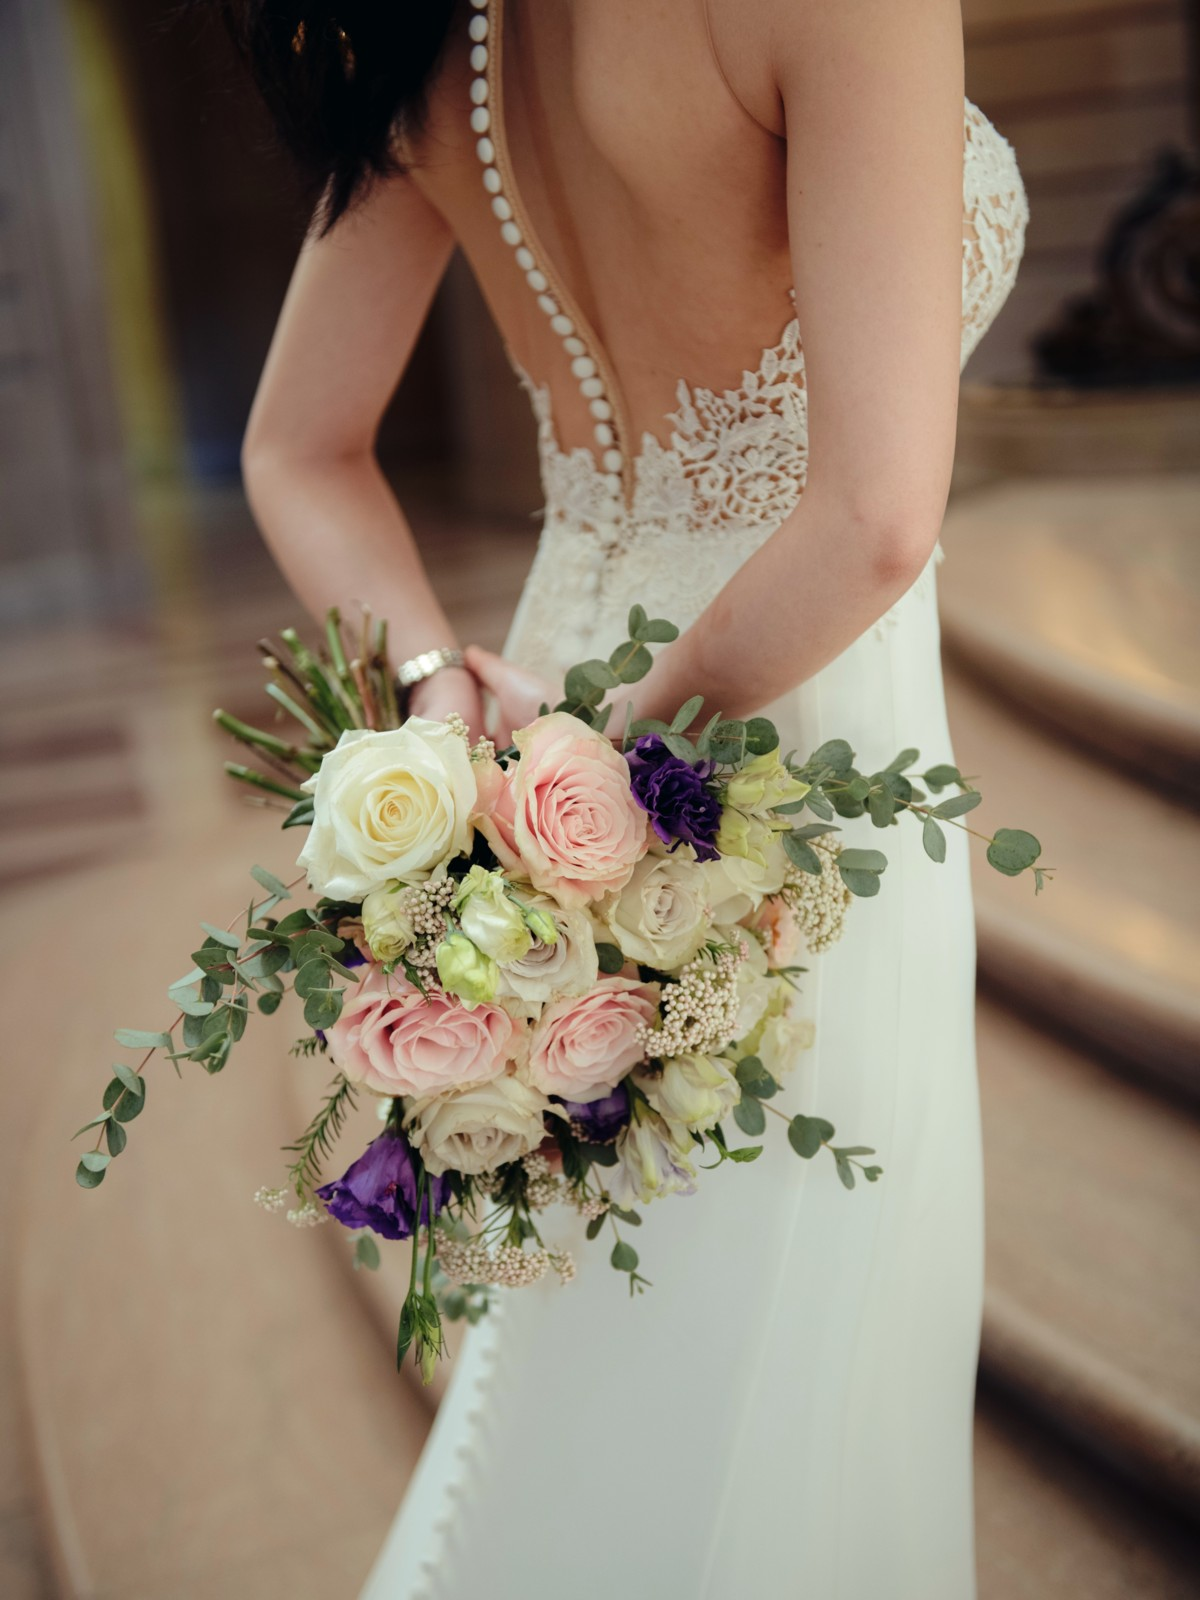 Inspirations by Gina - Lake Tahoe wedding florist - back of bride dress and bouquet